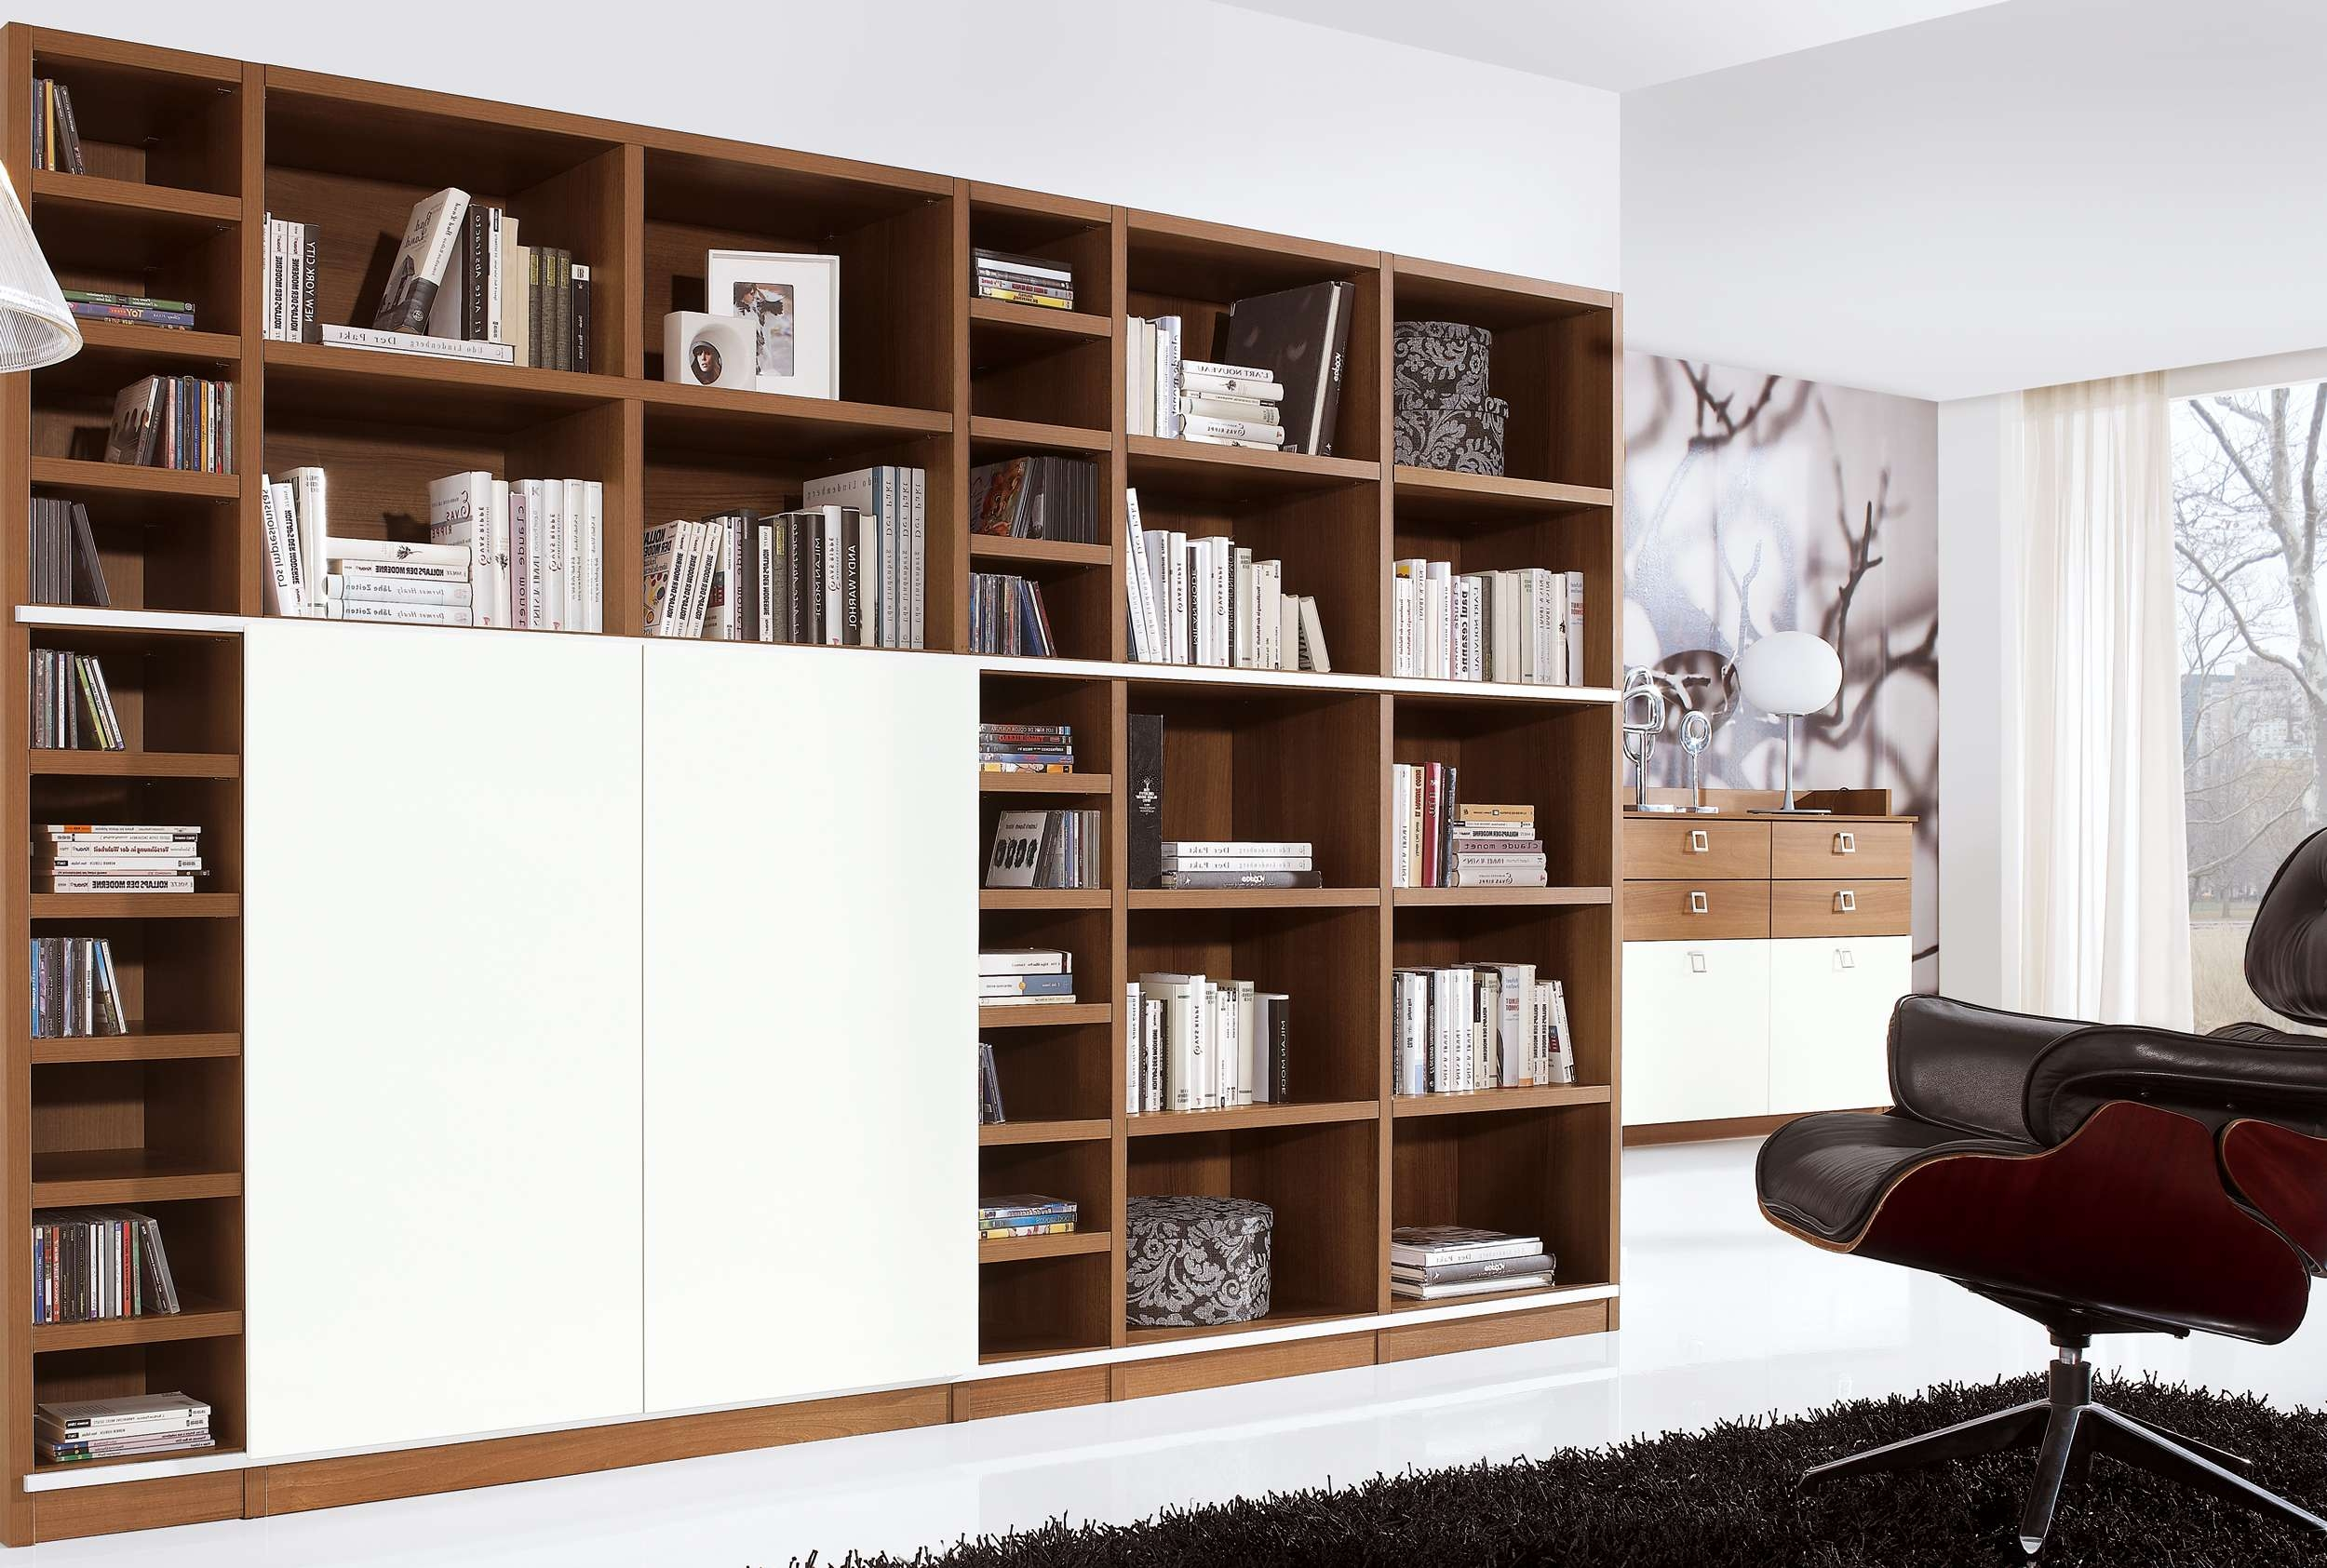 Wall Mounted Tv Cabinet With Sliding Doors – Imanisr Throughout Wall Mounted Tv Cabinets With Sliding Doors (View 20 of 20)